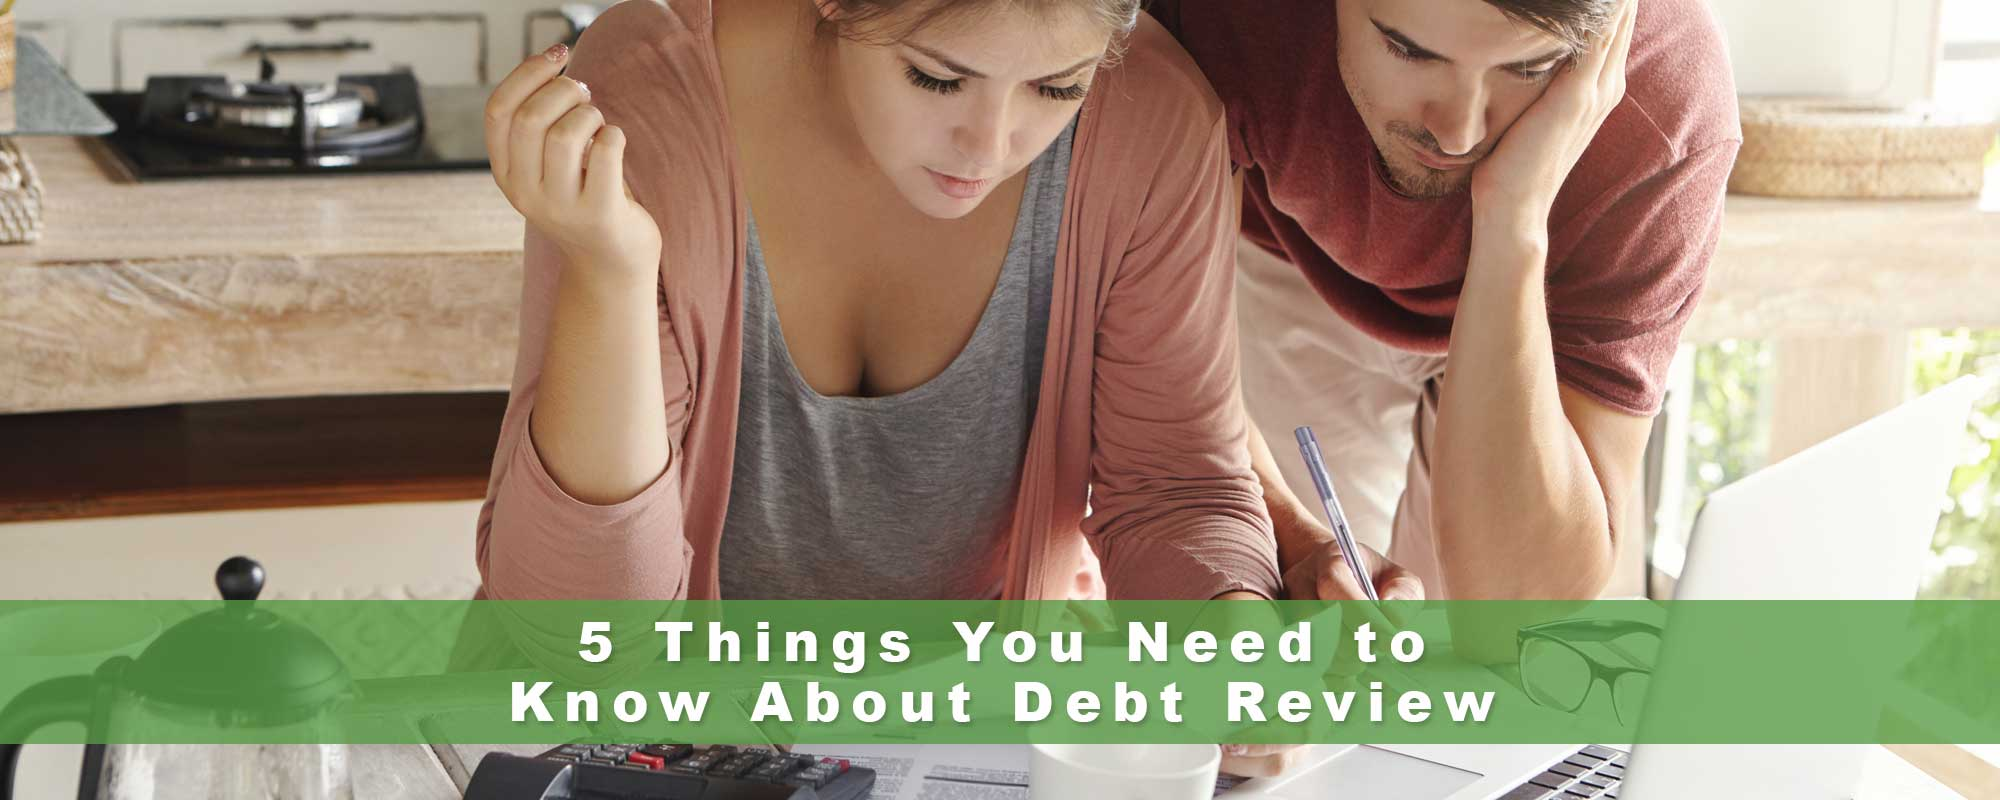 5 Things You Need to Know About Debt Review